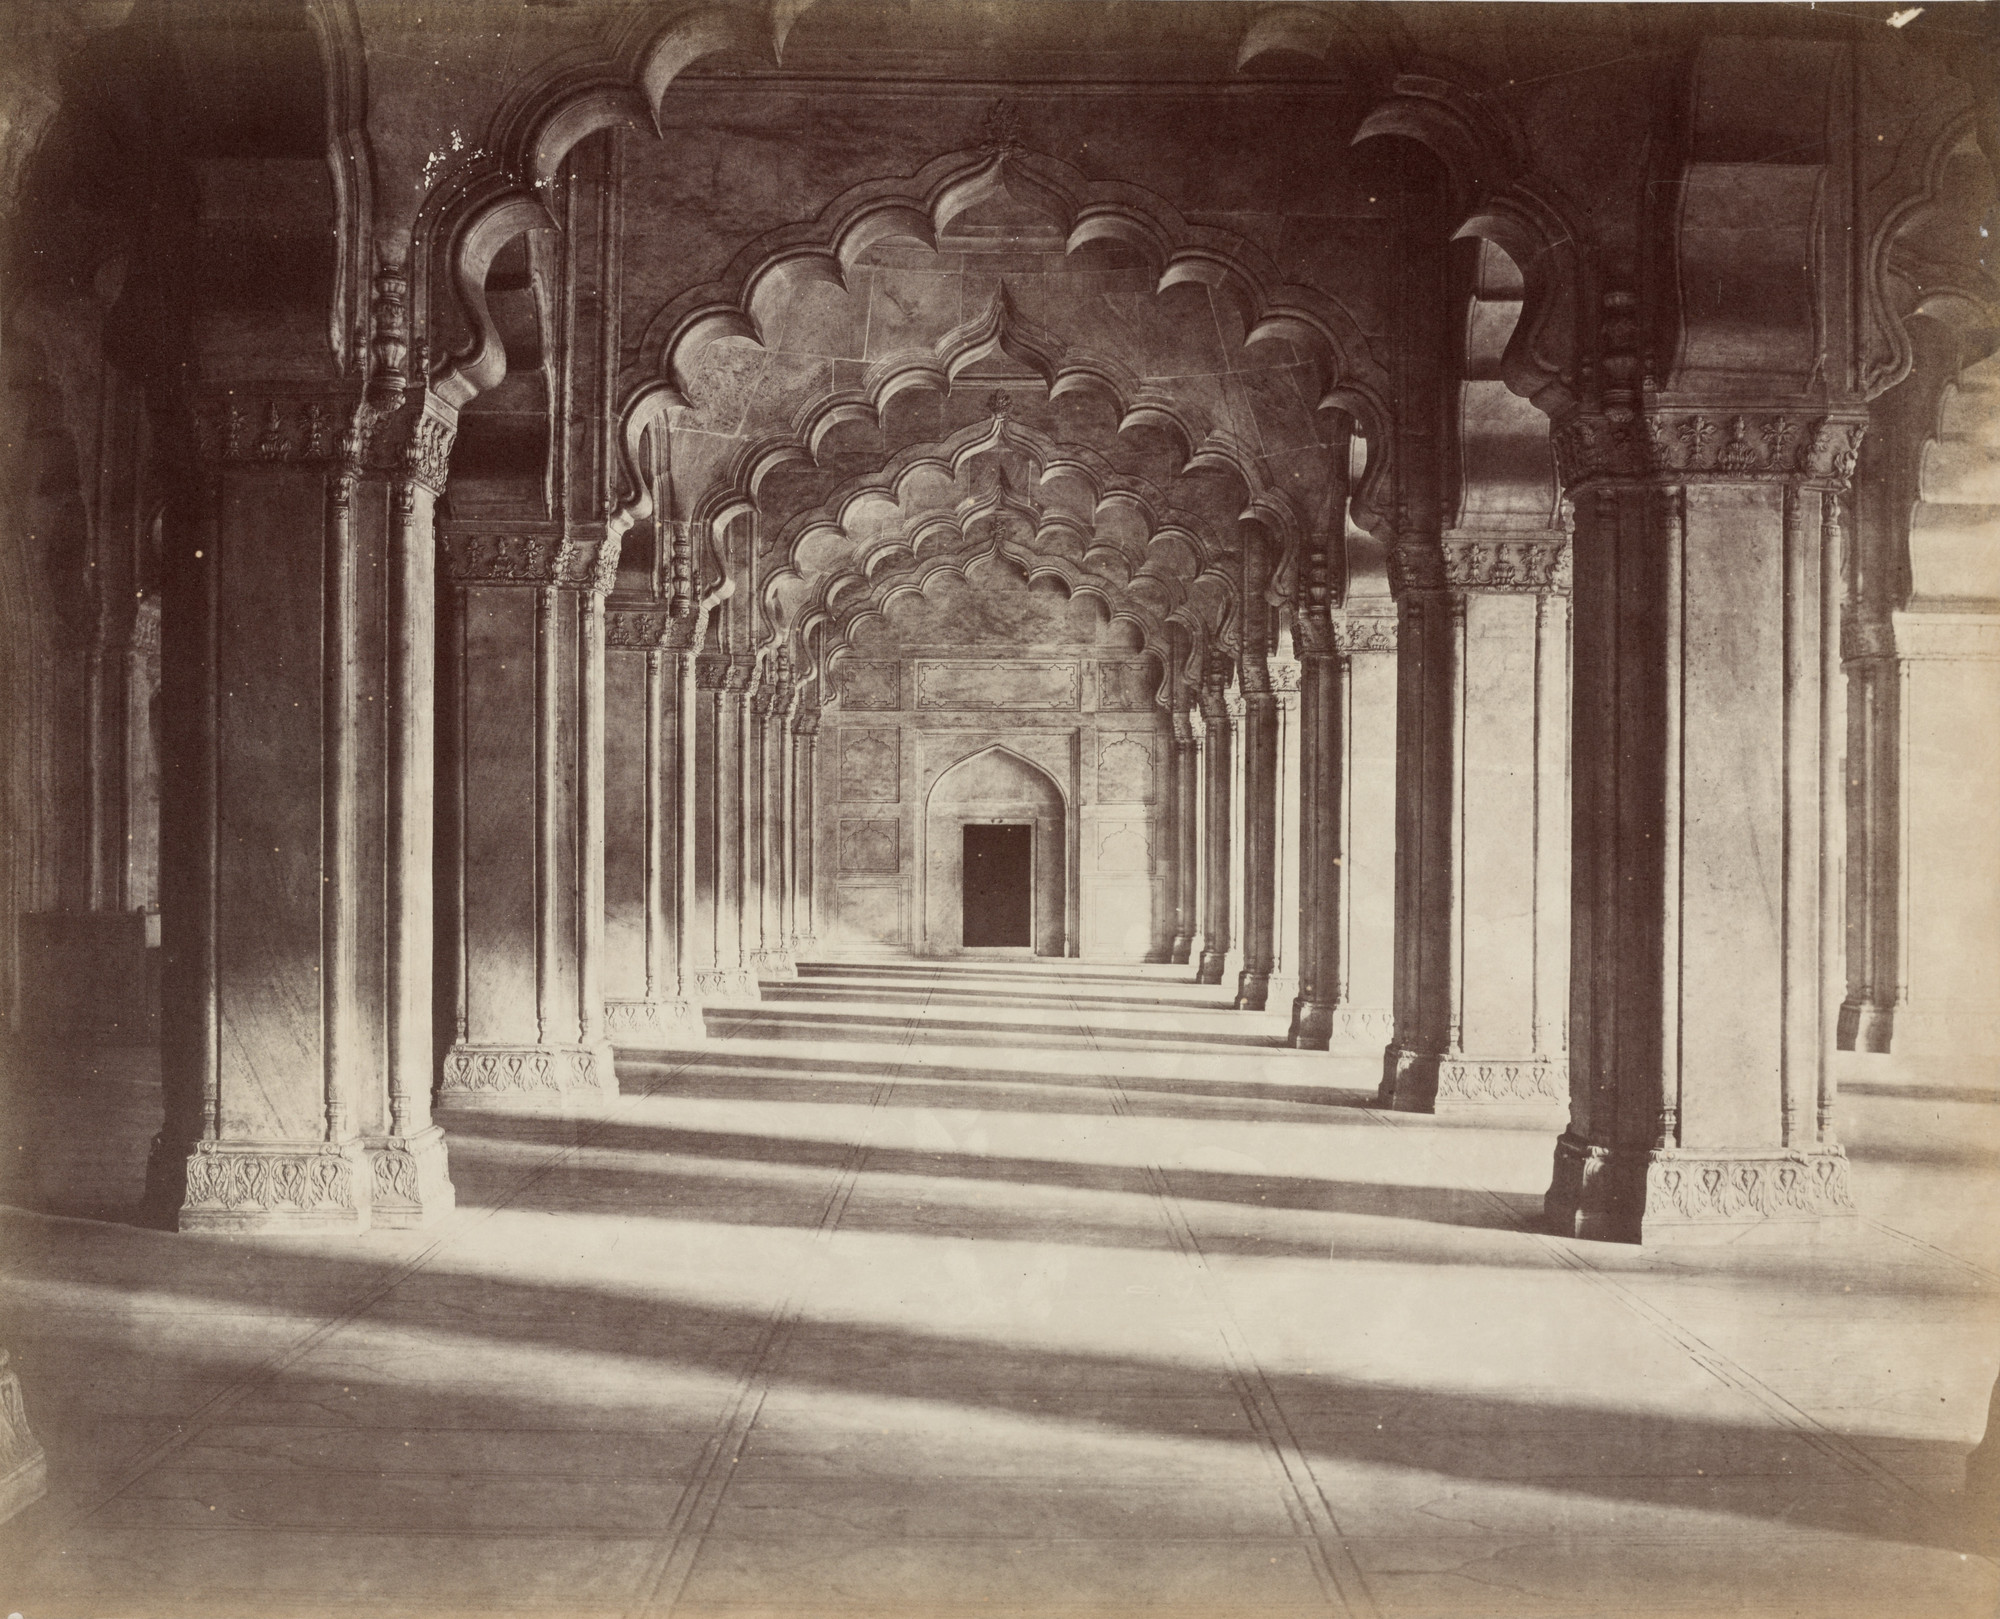 John Murray. Colonnade in the Pearl Mosque, Agra. c. 1856